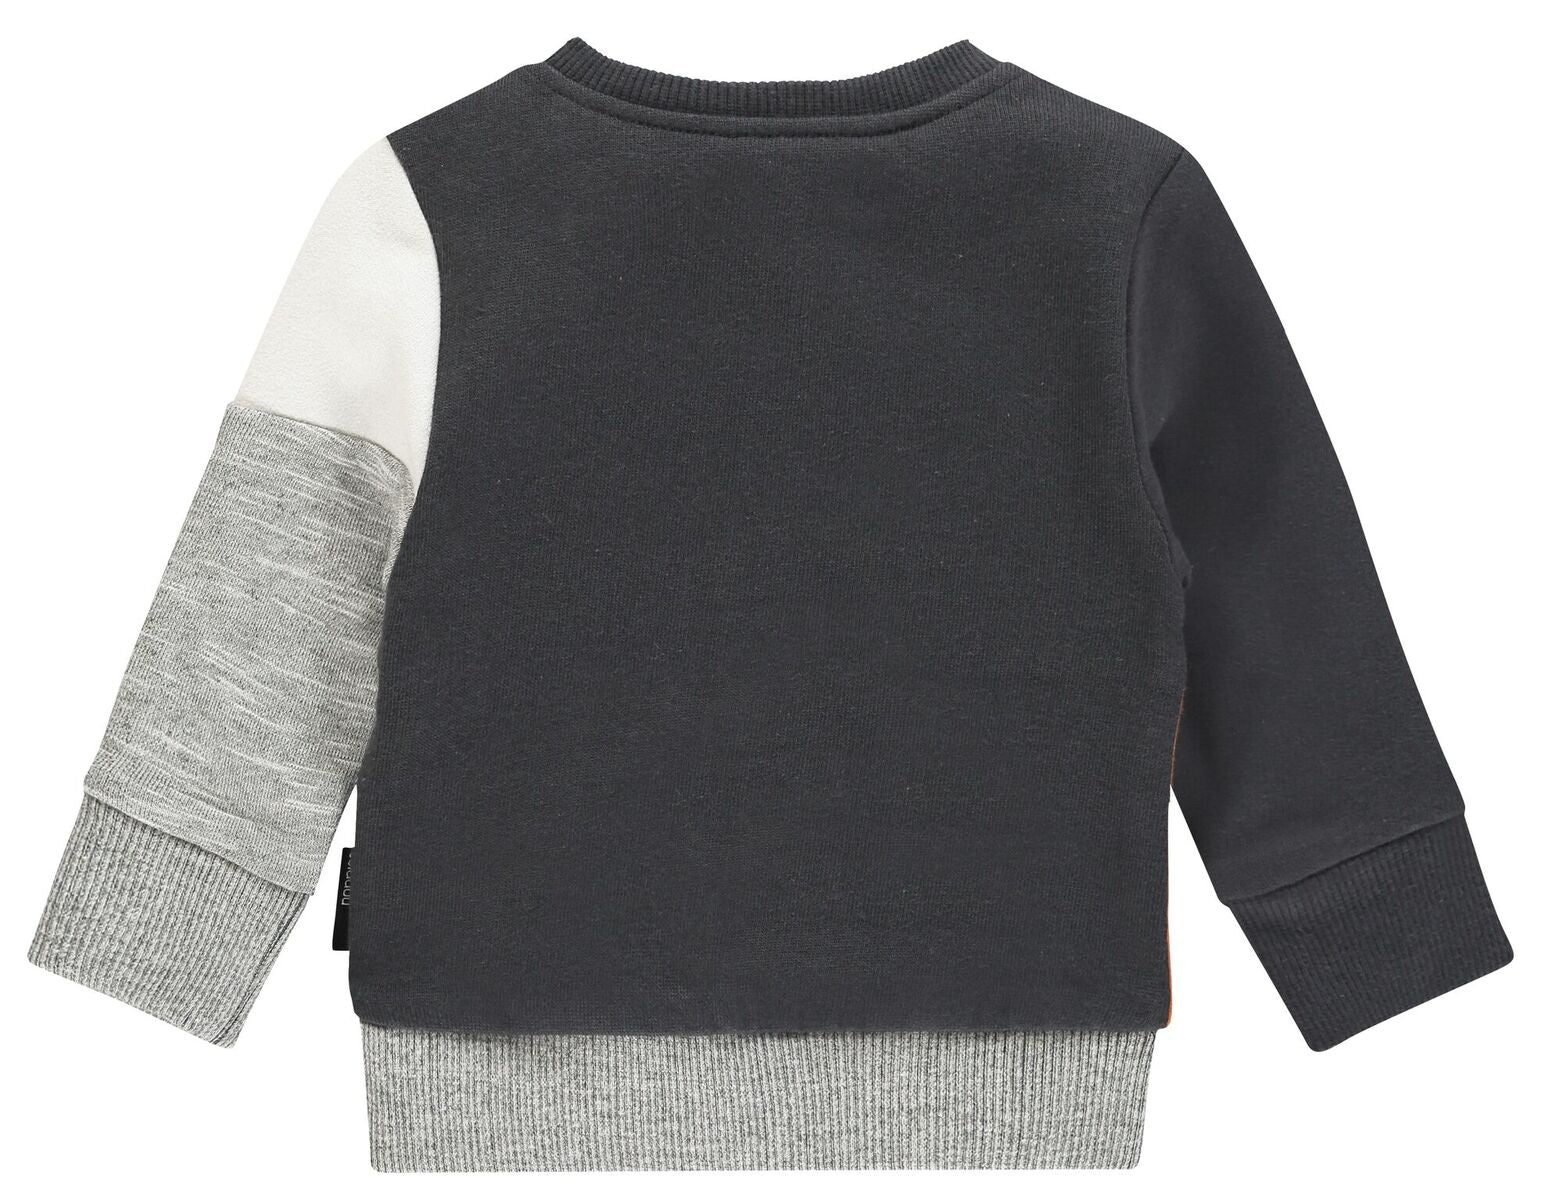 Noppies B Sweater Truckee in Charcoal